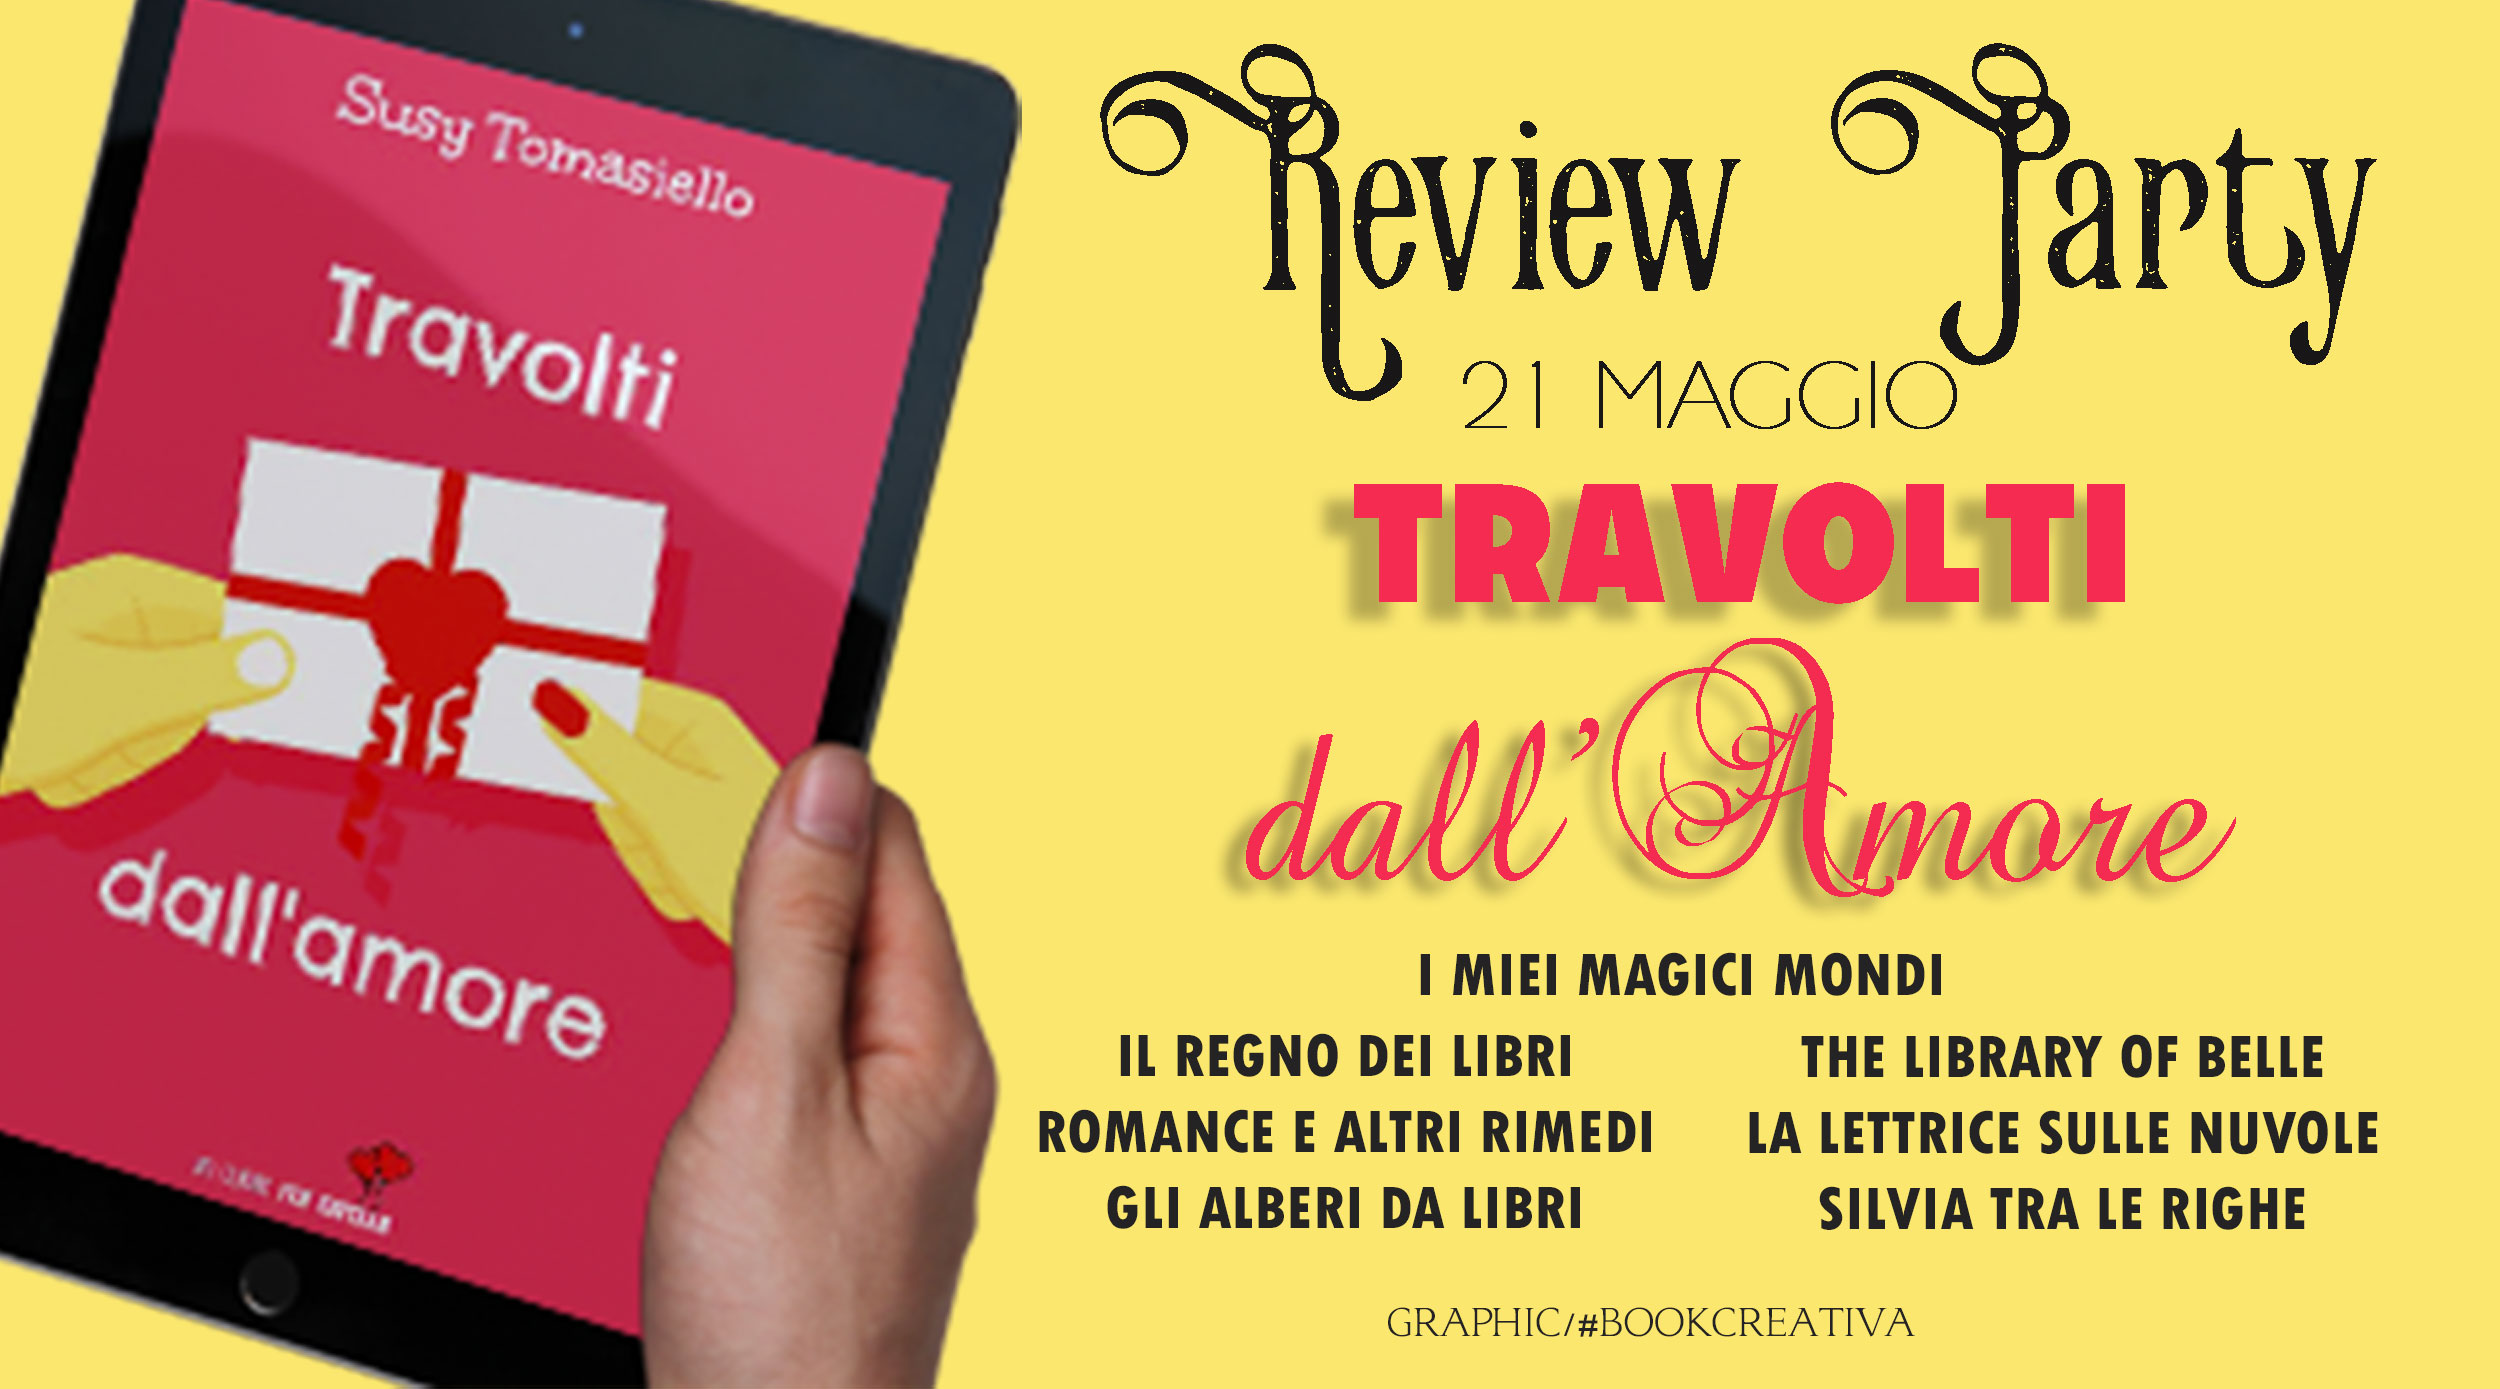 Review Party. Travolti dall'amore di Susy Tomasiello.